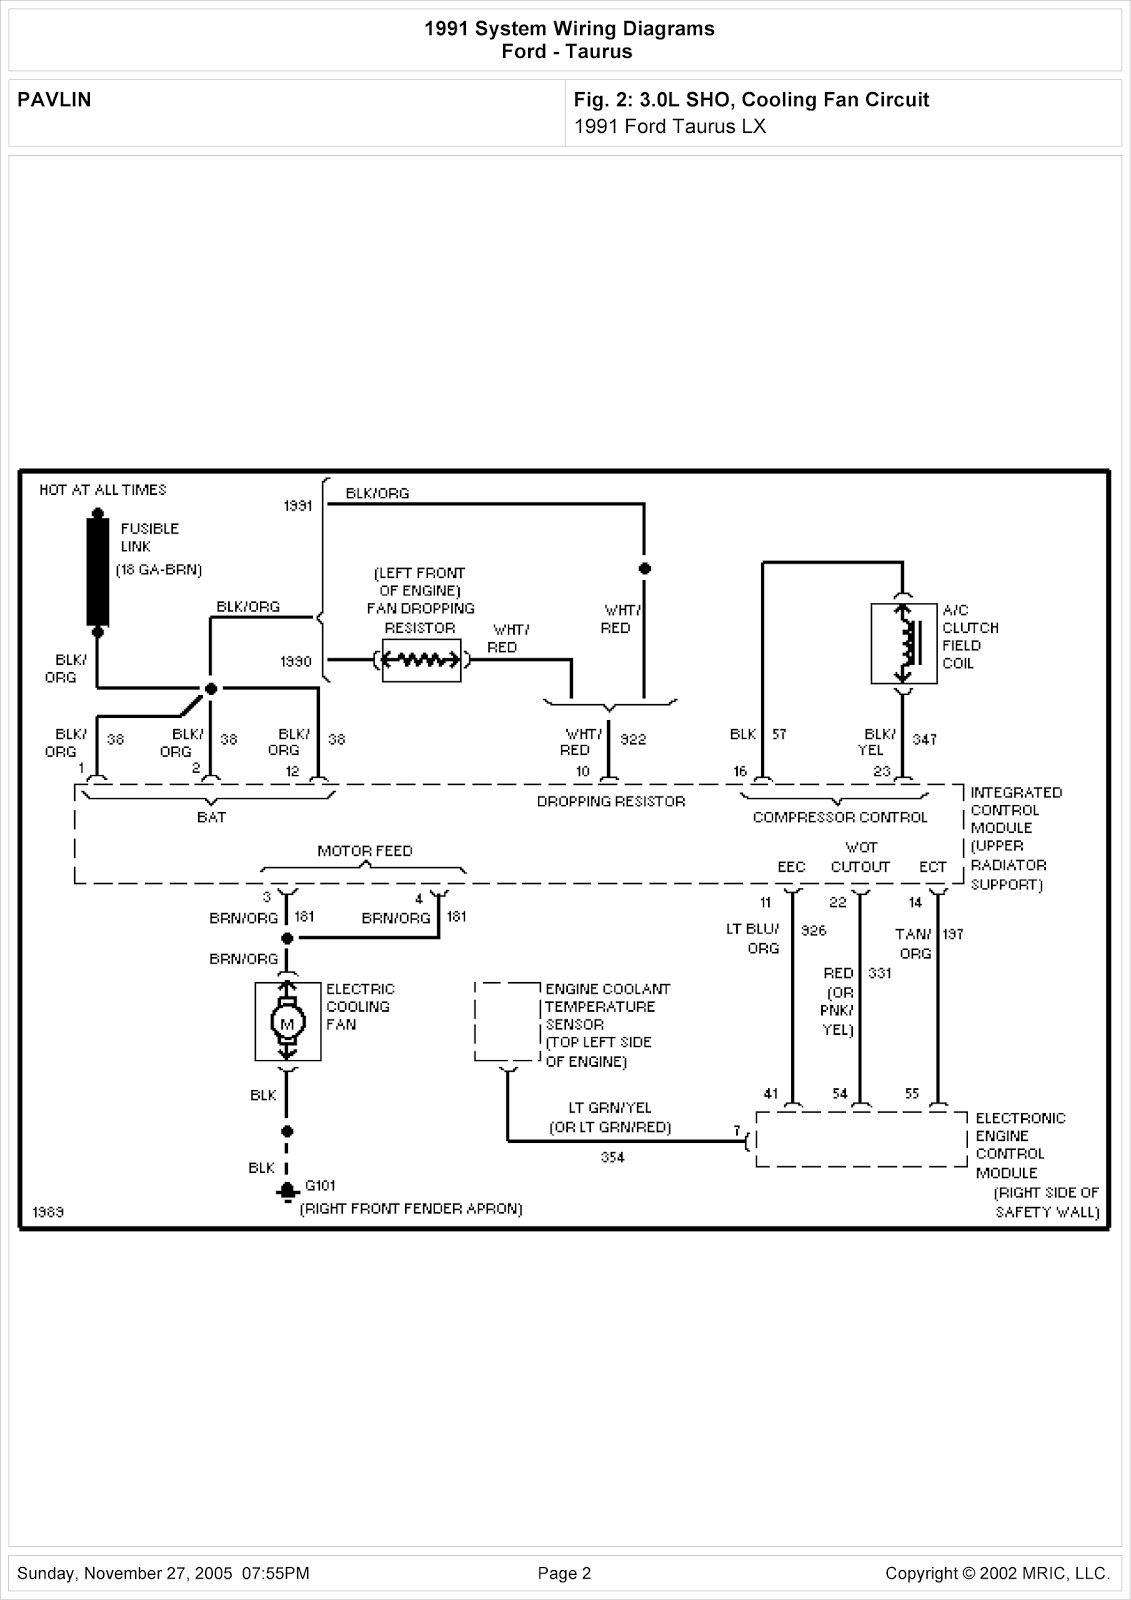 fuse box diagram for 1999 ford taurus 1999 ford taurus system wiring diagram cooling fan circuit ... wiring diagram for 1999 ford taurus #1